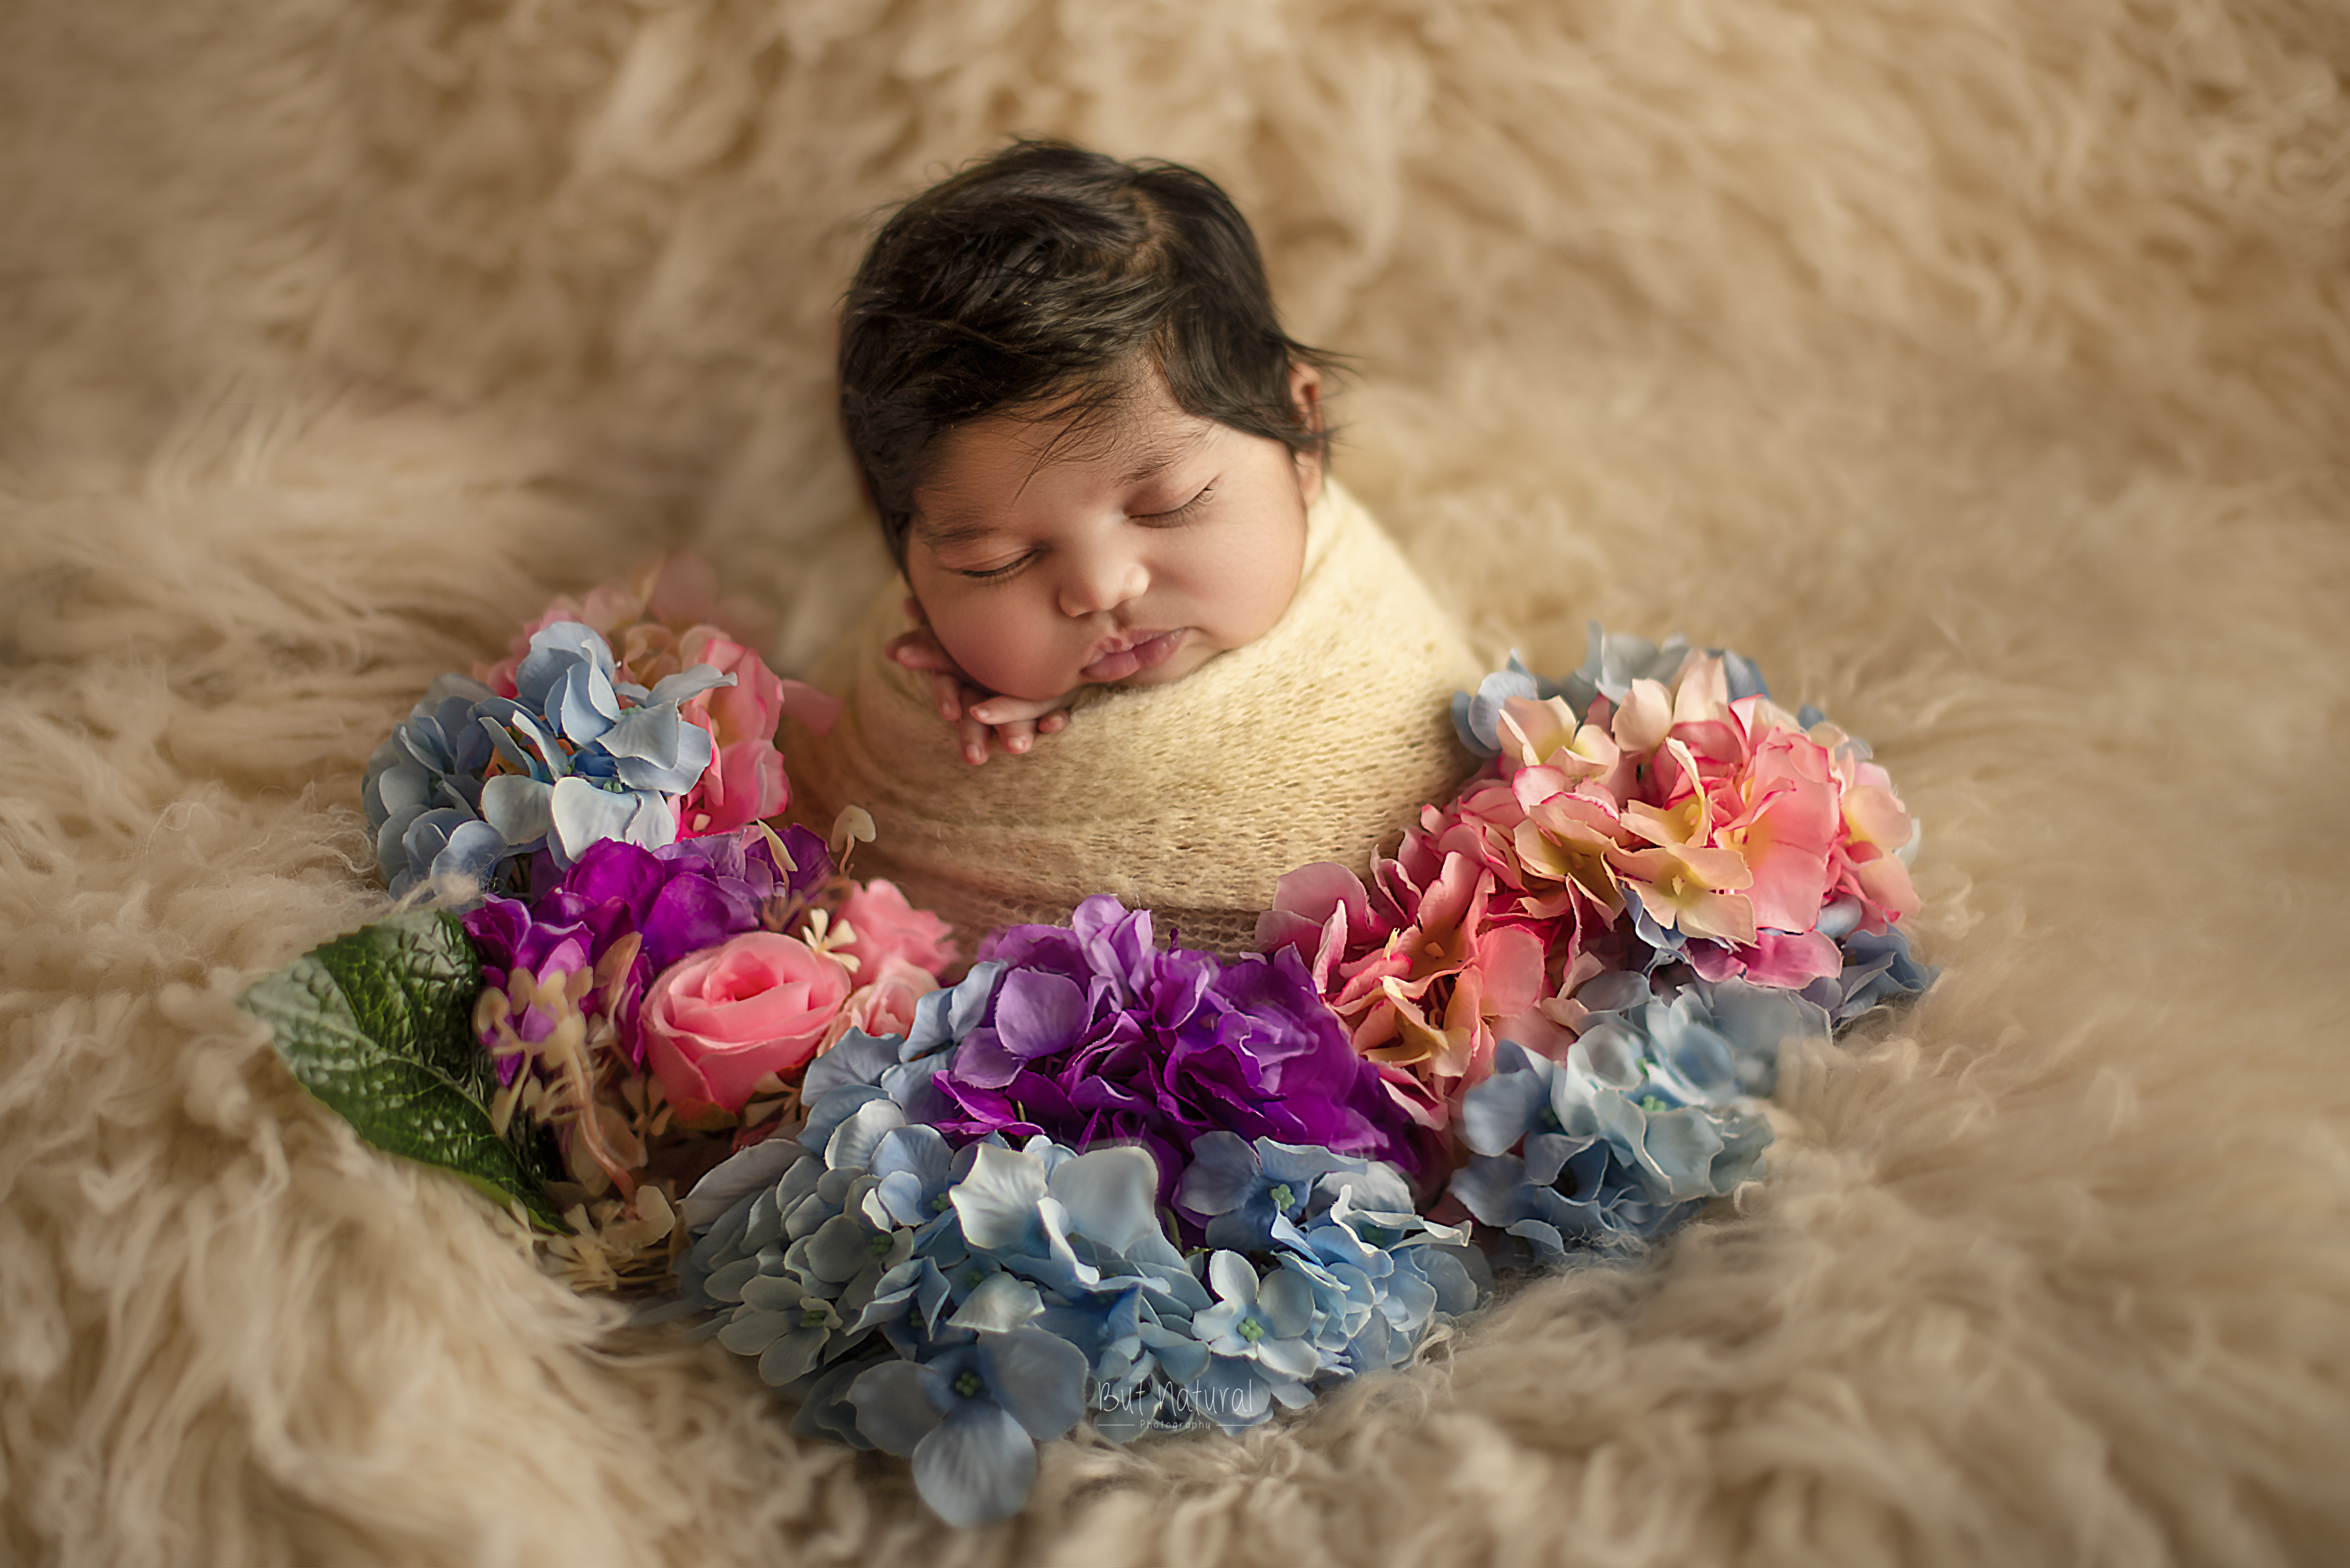 Please do not try these poses at home ever it is most important to have a trained newborn baby photographer for such specialised photoshoots